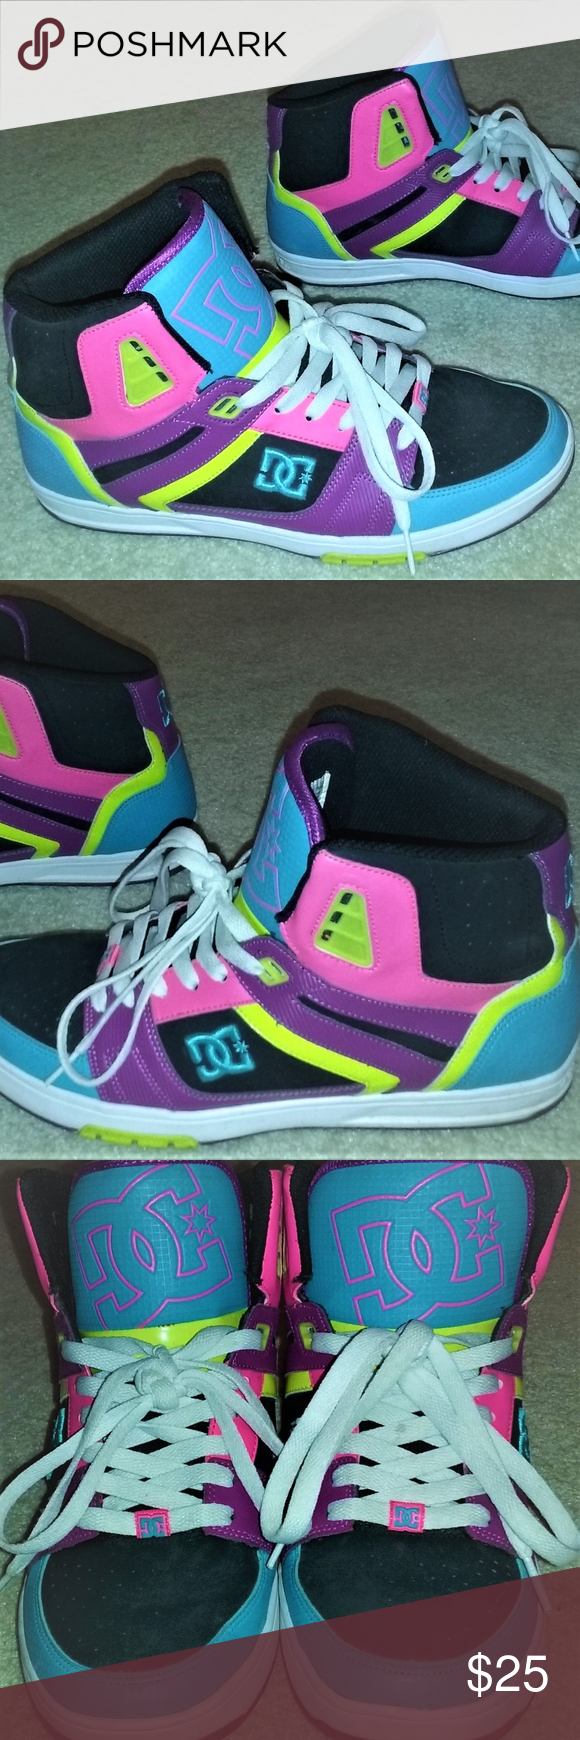 DC High Top Skate Shoes Bright Neon